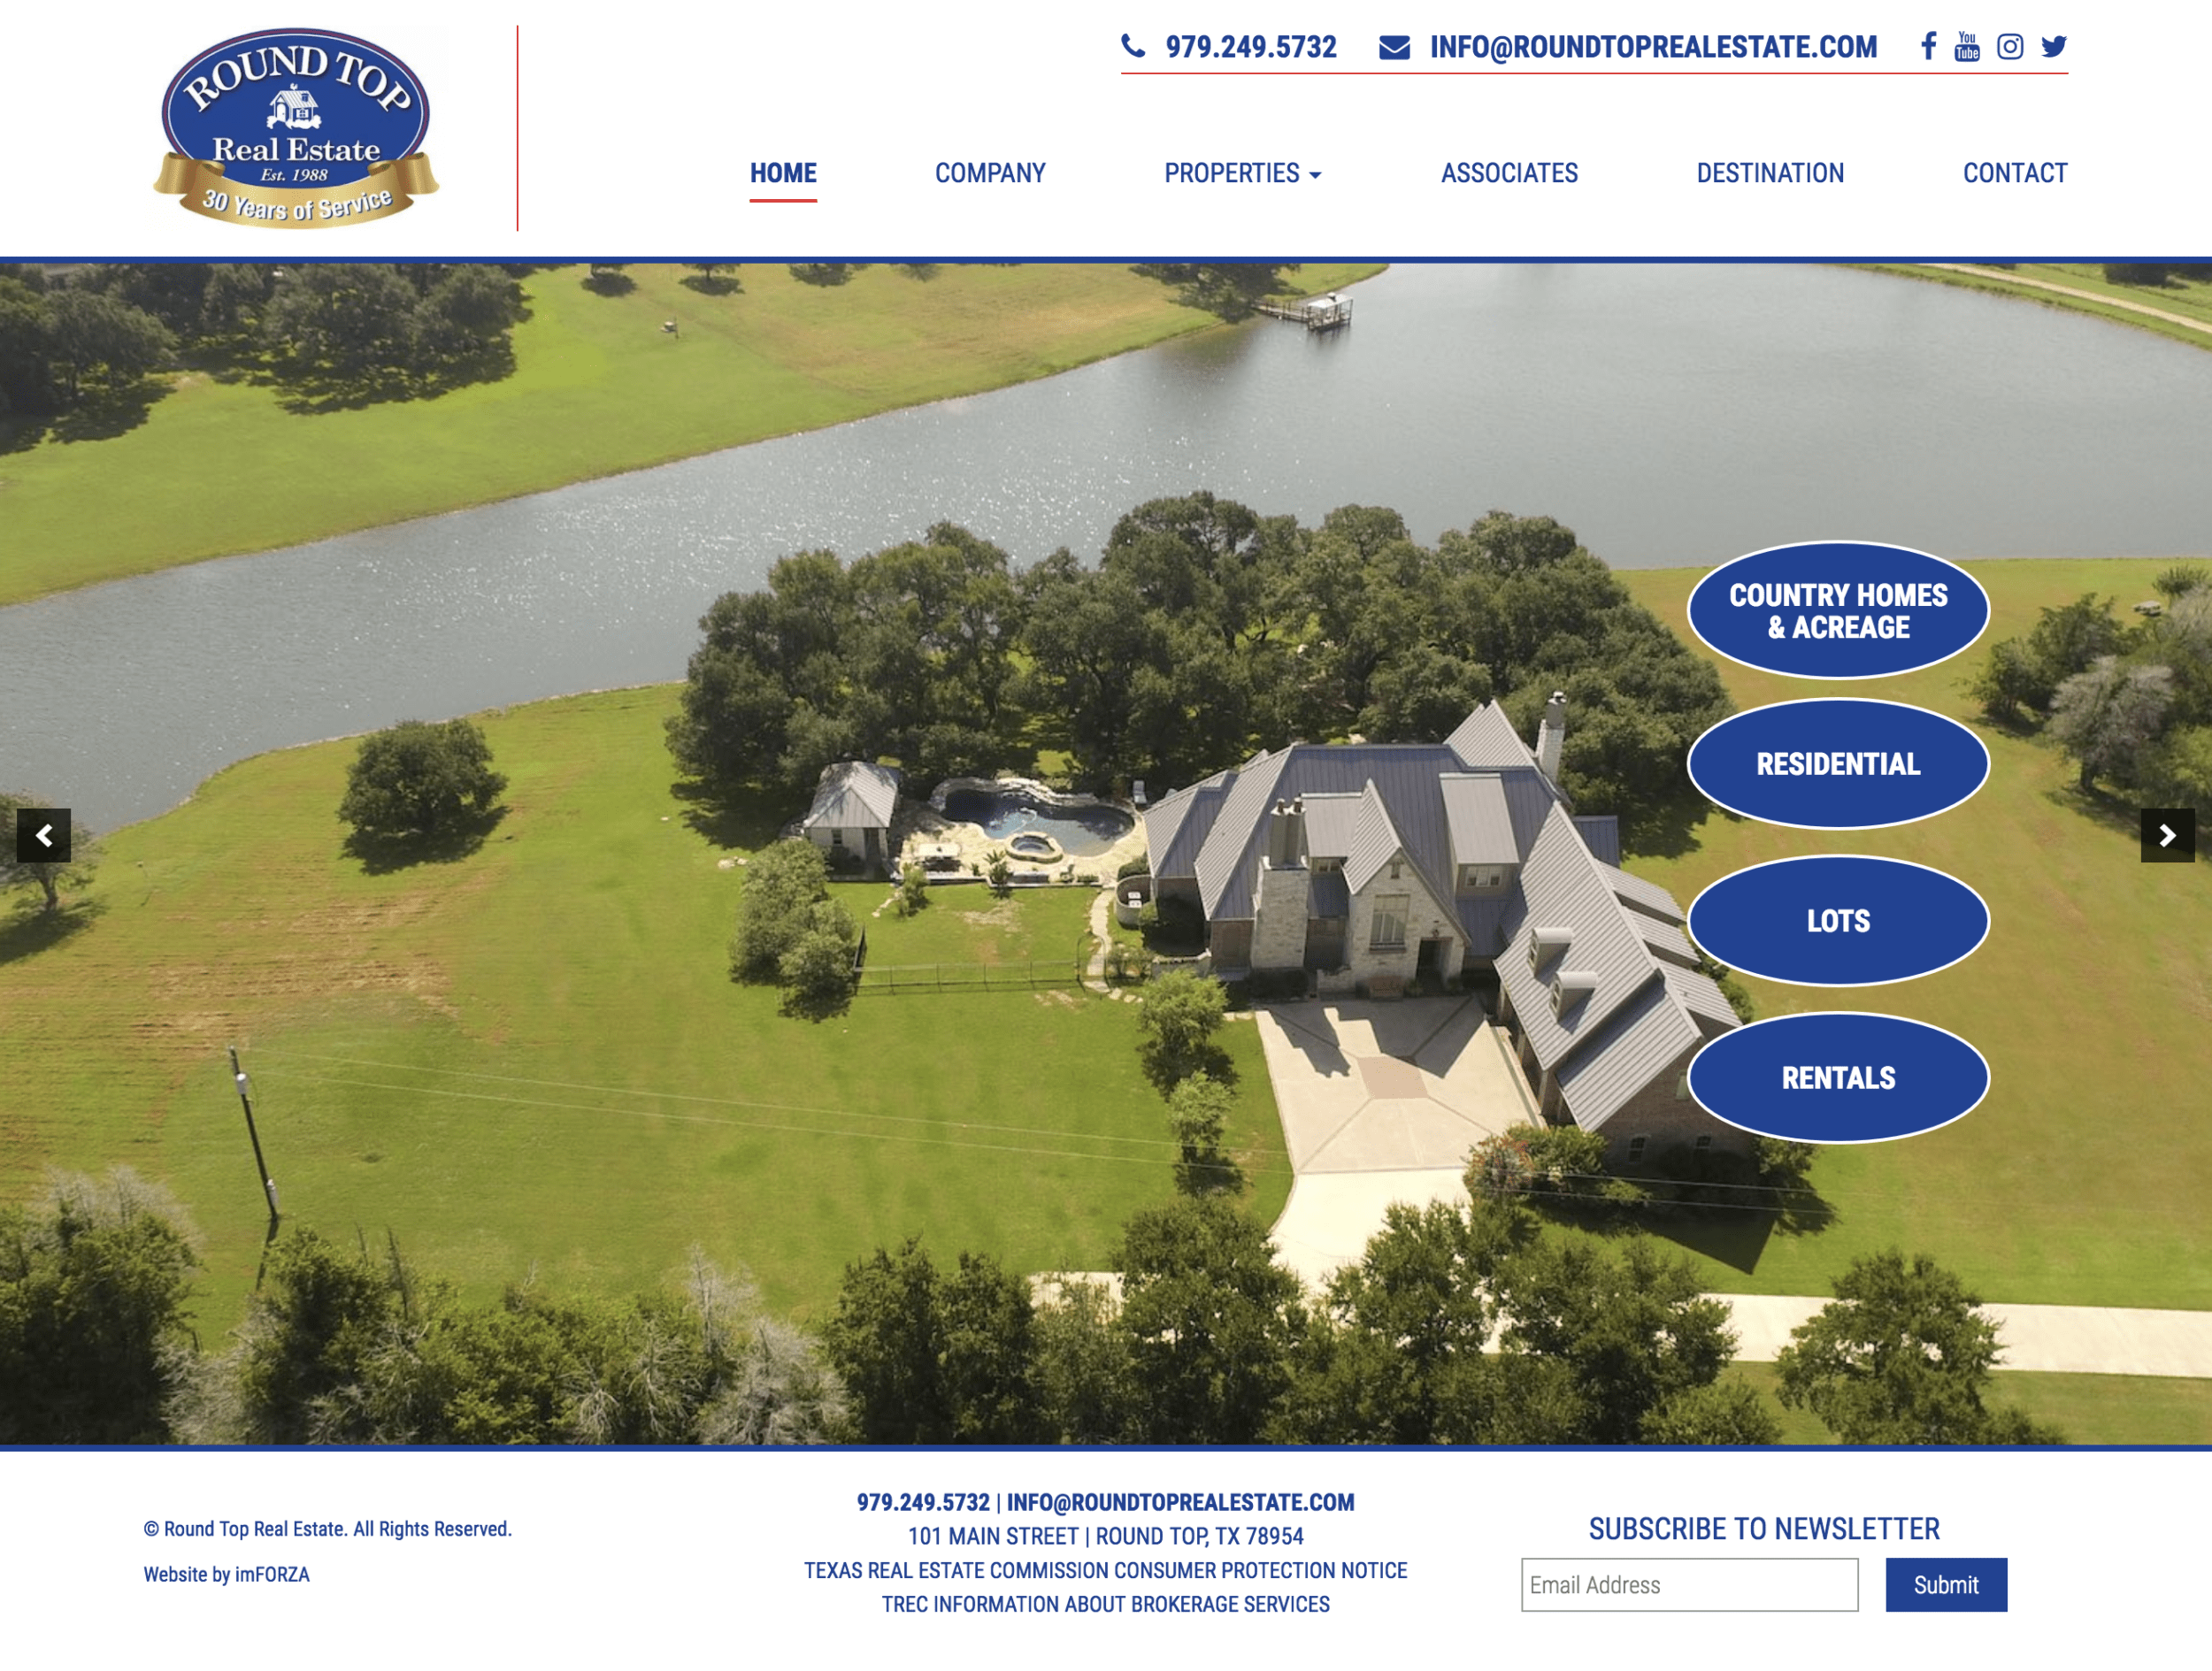 Round Top Real Estate - Custom Real Estate WordPress Website by imFORZA